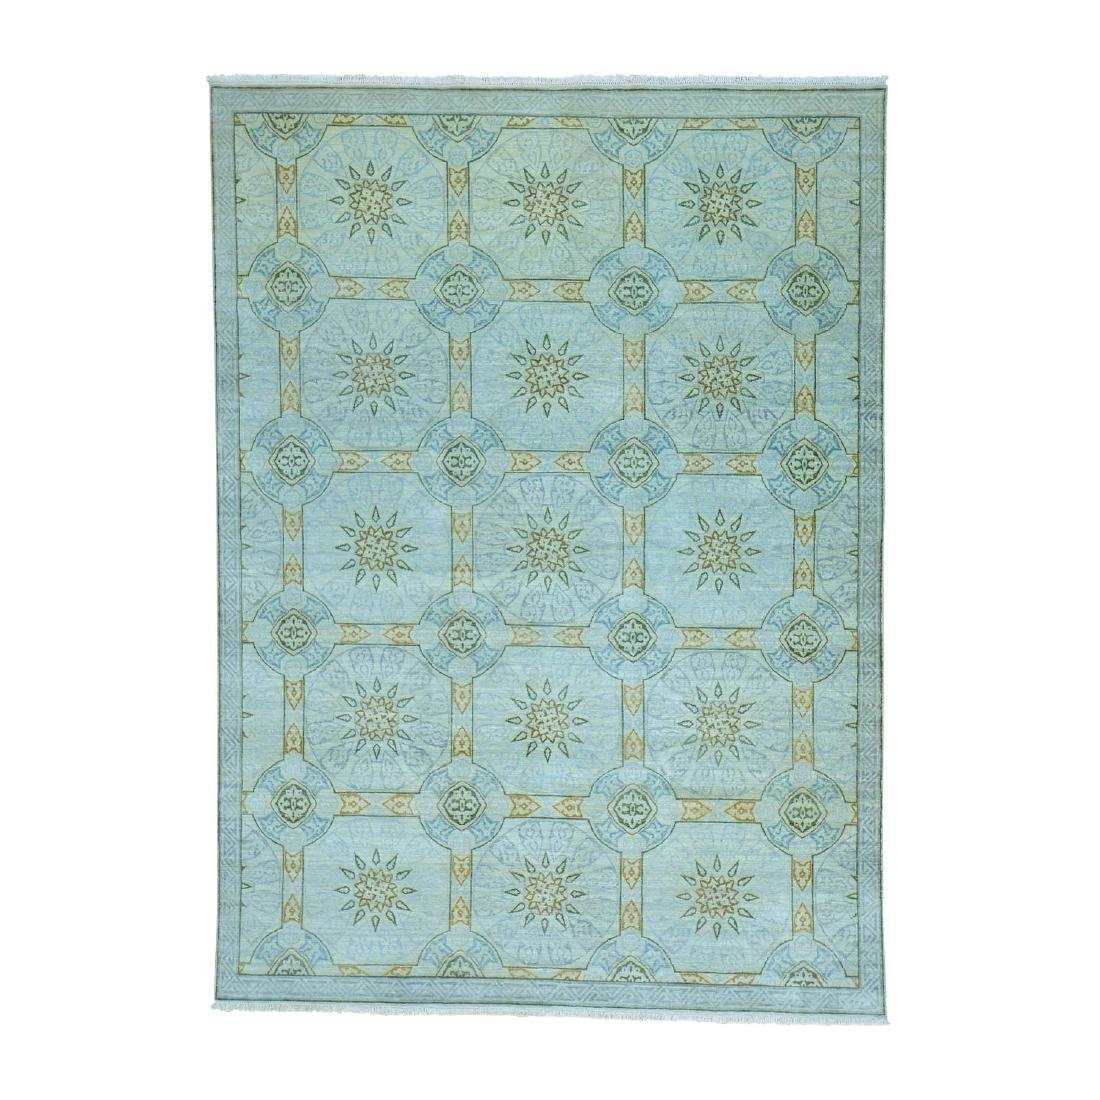 Modern Arts & Crafts Wool Hand Knotted Rug 8.10x12.3